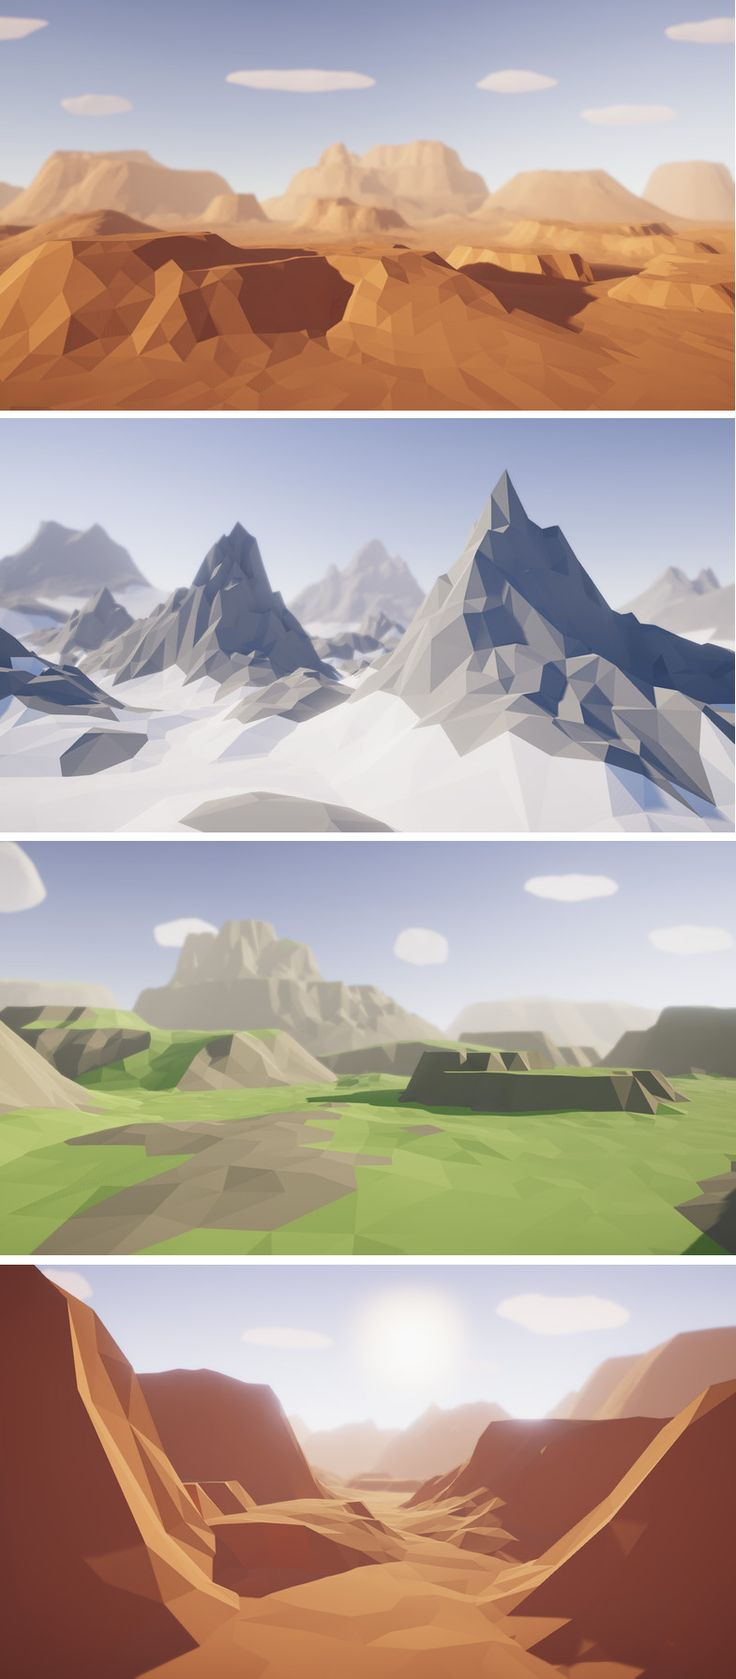 Low Poly Modular Terrain Pack This package contains a huge variety of different modular terrains and mountains ready to use for your game to create unique landscapes. Just drag and drop prefabs to your scene and achieve beautiful results in no time. PC & mobile friendly assets.